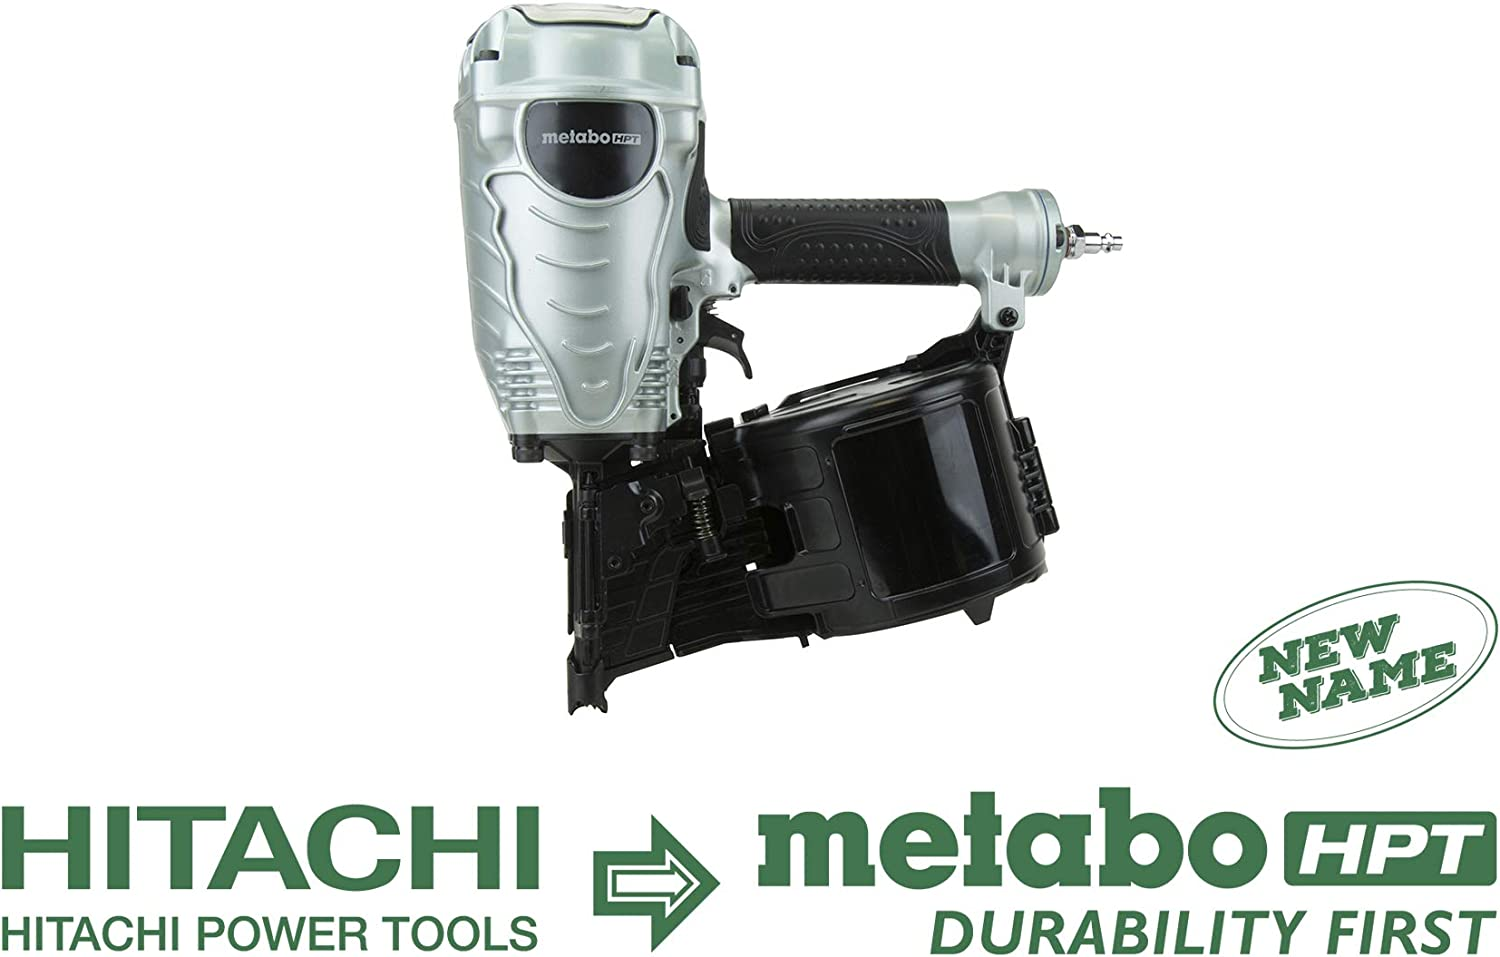 Metabo HPT NV90AGS Pneumatic Coil Framing Nailer, 1-3 4-Inch up to 3-1 2-Inch Wire Collated Coil Framing Nails, Tool-less Depth Adjustment, Convenient Side Load, Tilt Bottom Magazine, 5-Year Warranty